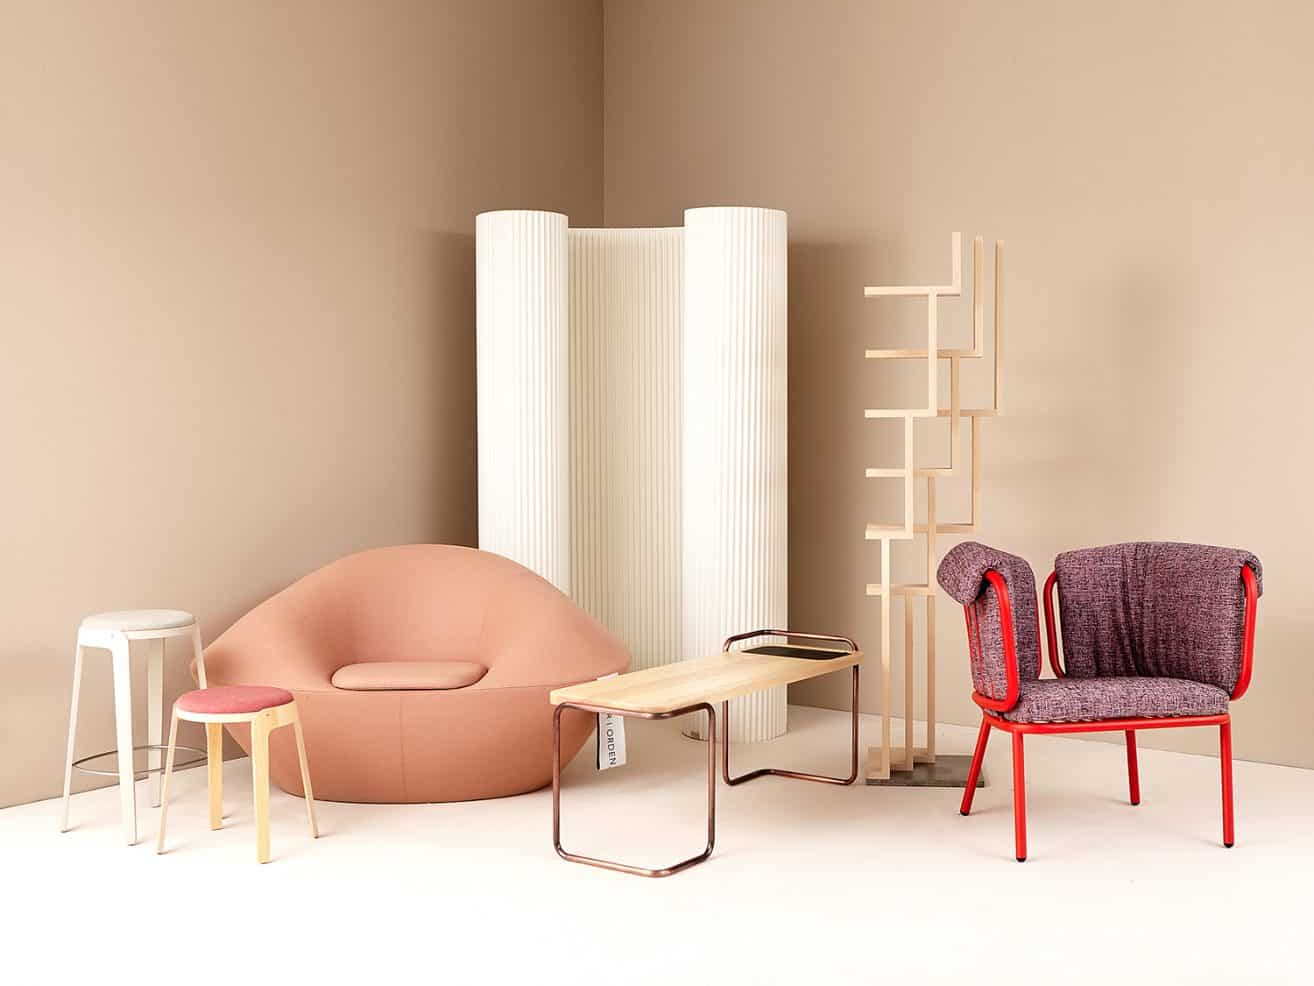 Beckmans College Of Design Shows Design Collaborations With Six Of Swedenu0027s Foremost  Furniture Producers U2013 Blå Station, Gärsnäs, Johanson Design, Källemo, ...